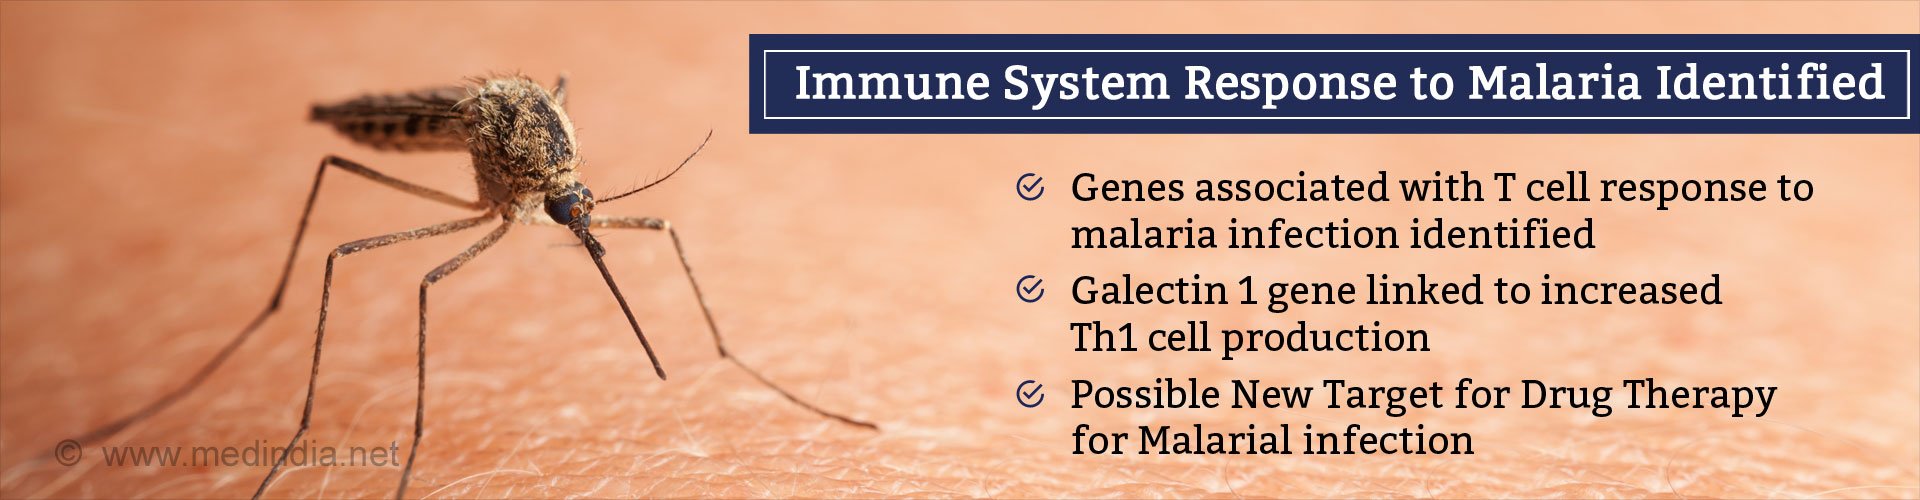 Immune system response to malaria identified